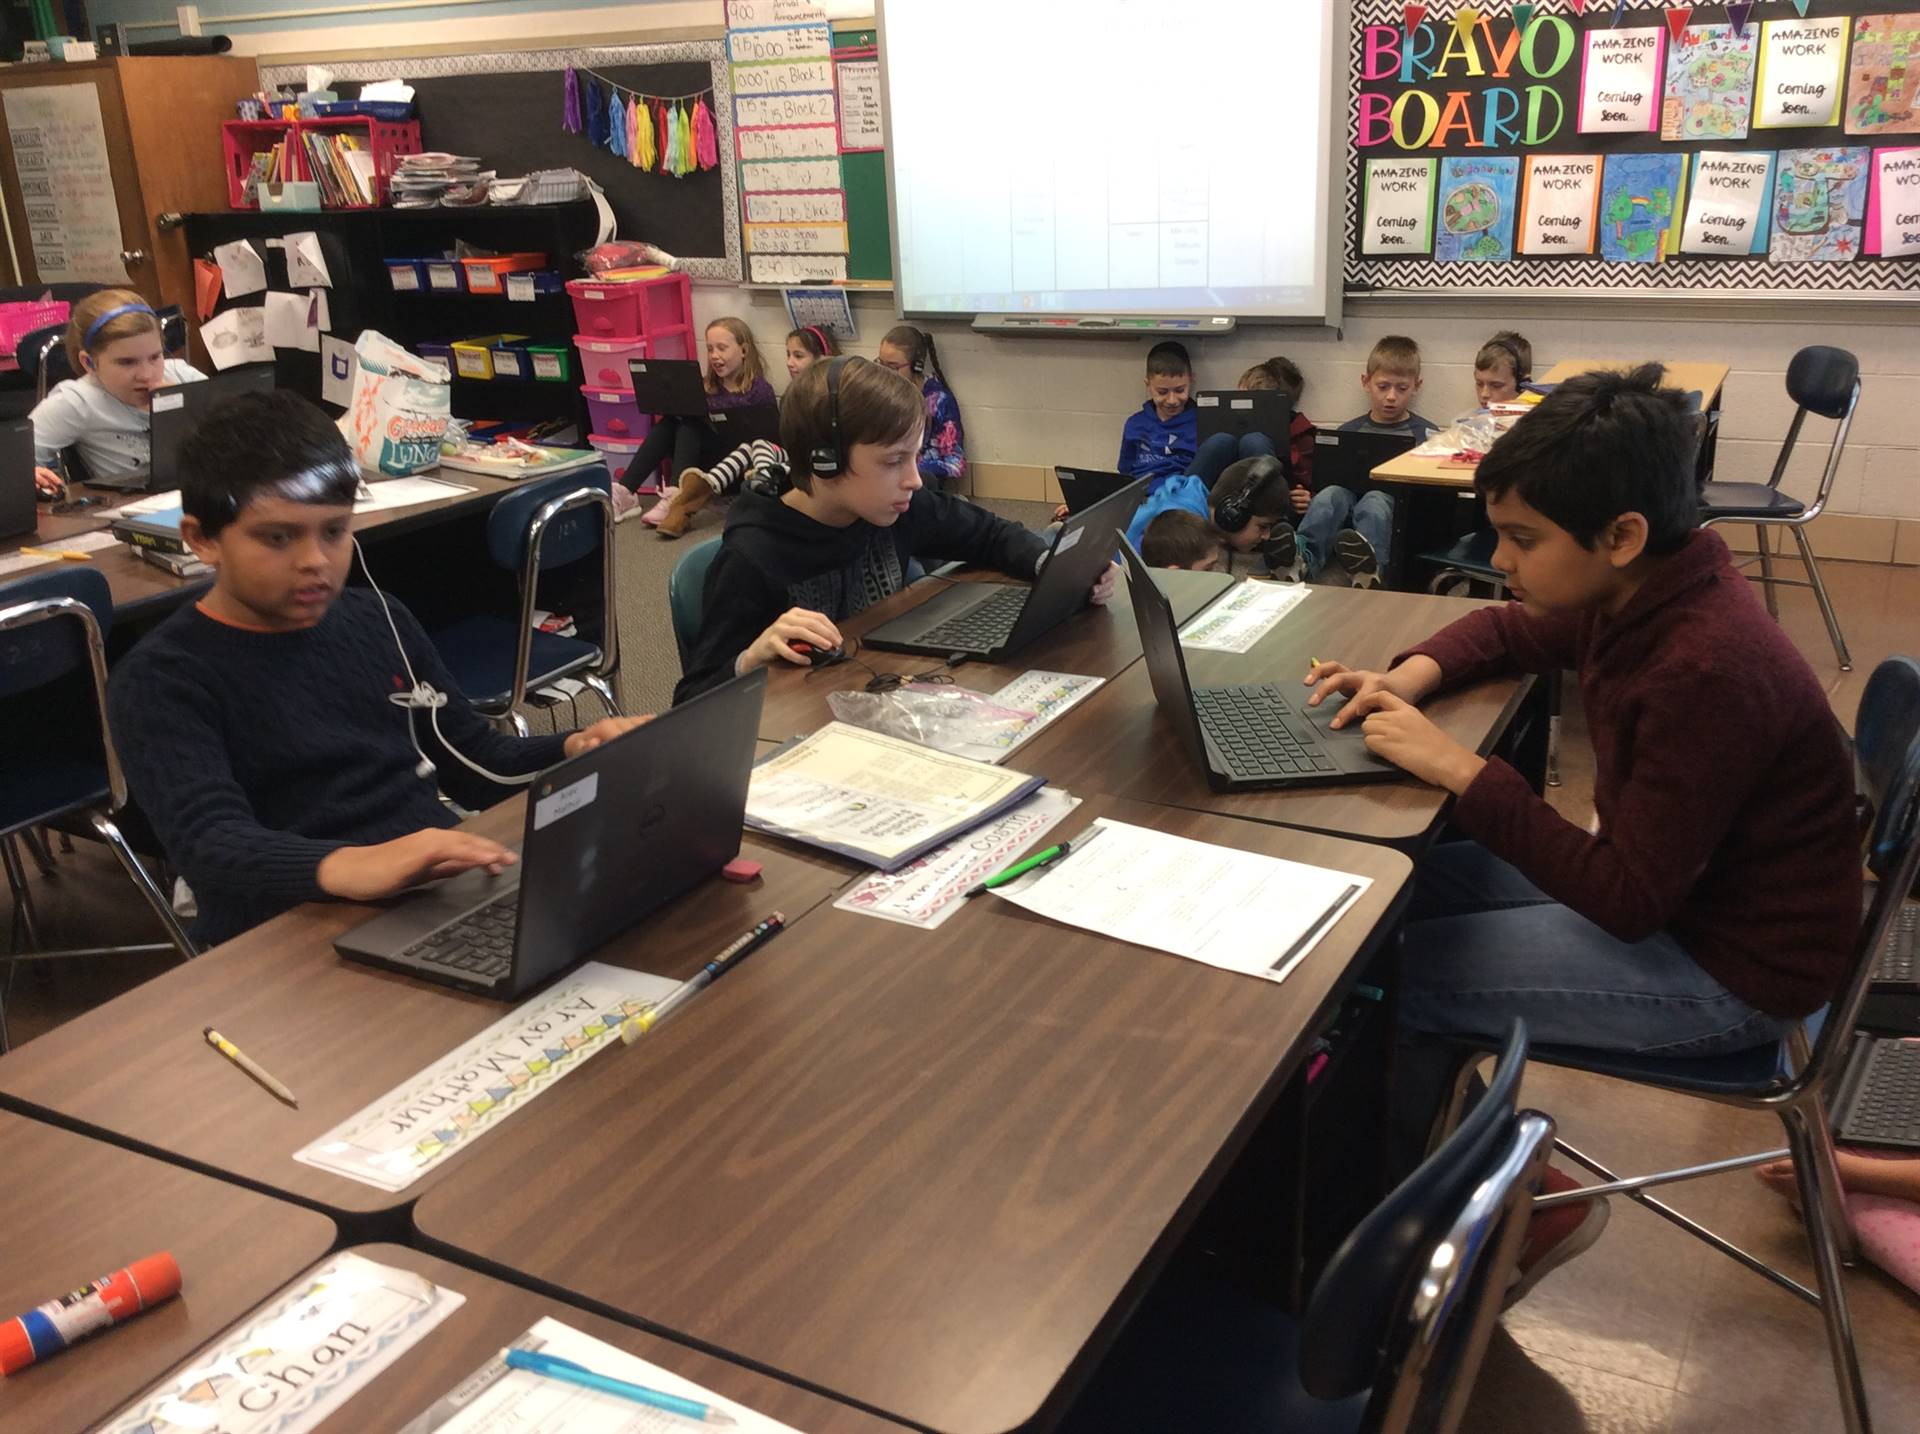 Competent Coders!